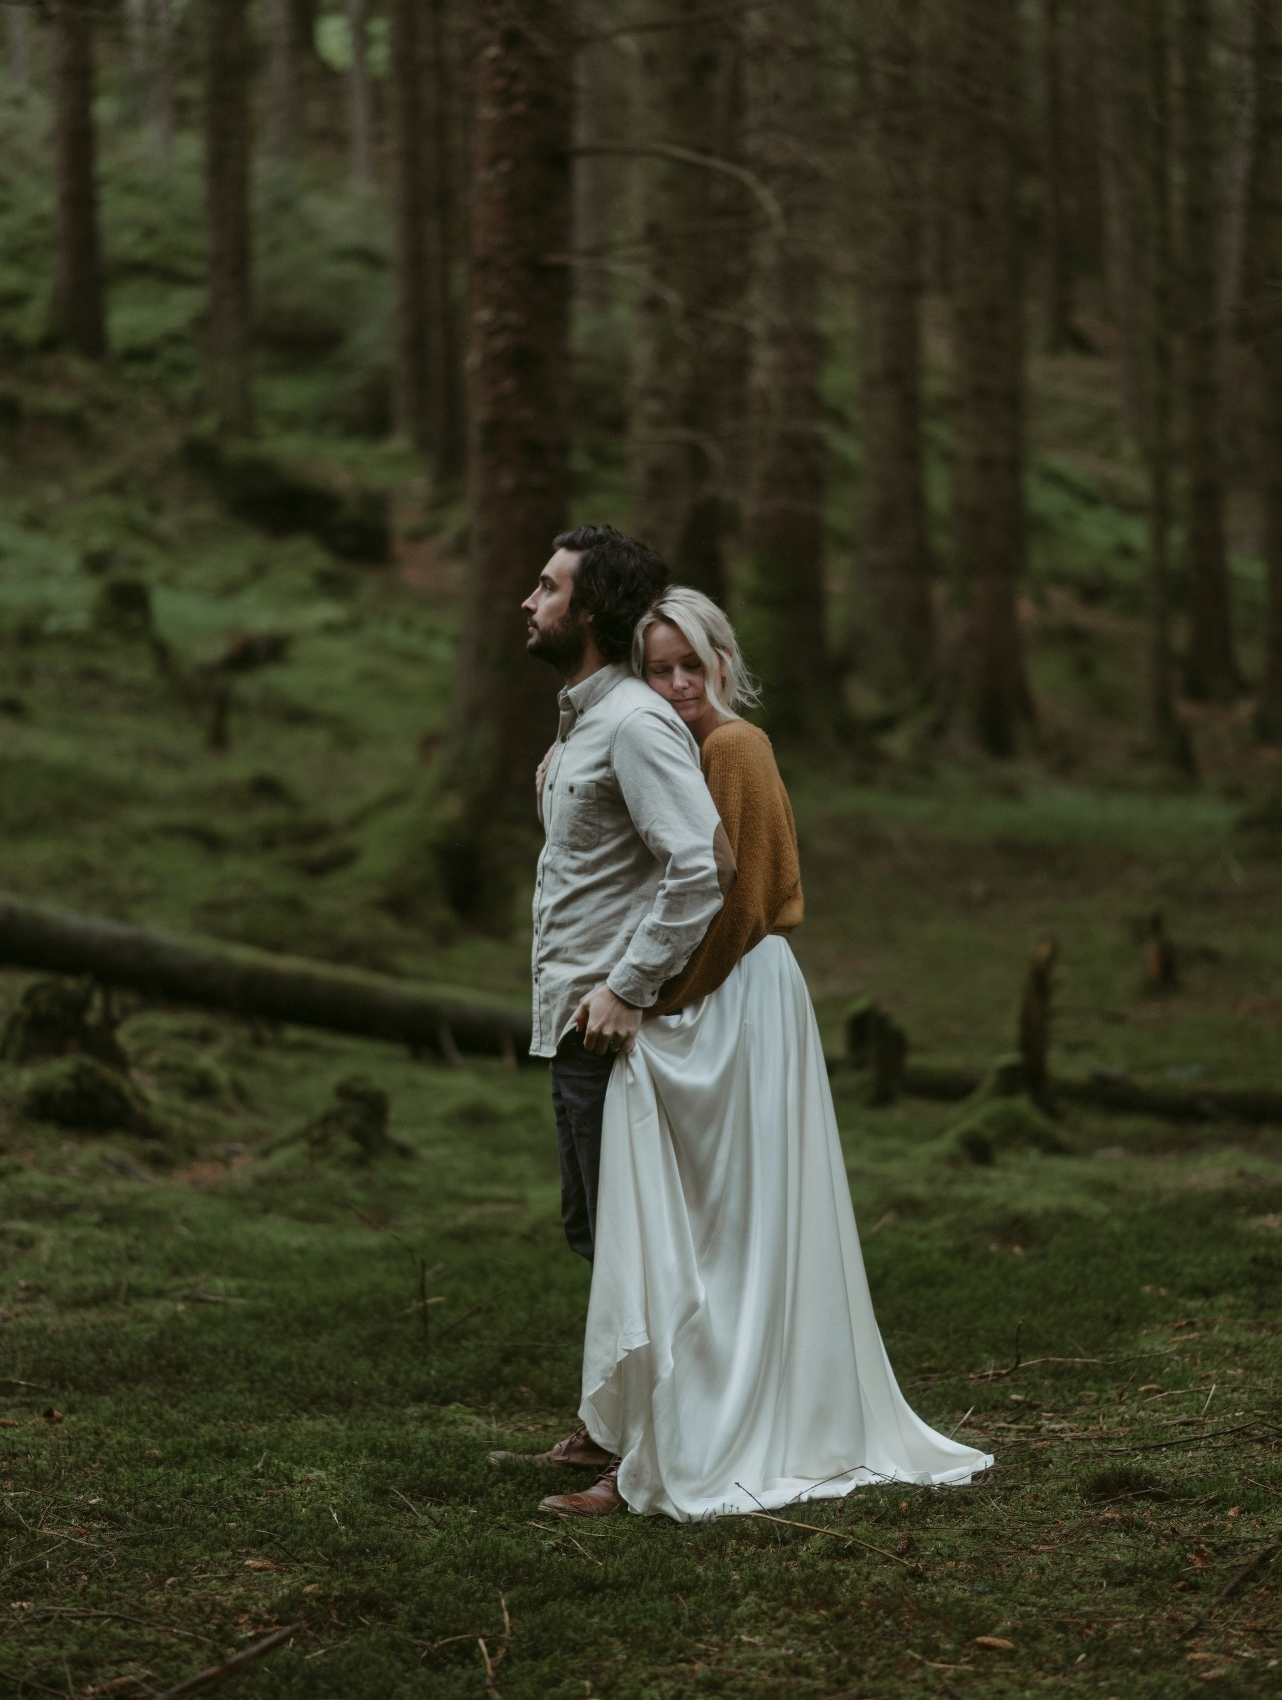 Scotland Elopement Photographer Destination Wedding Glencoe Glasgow 0245